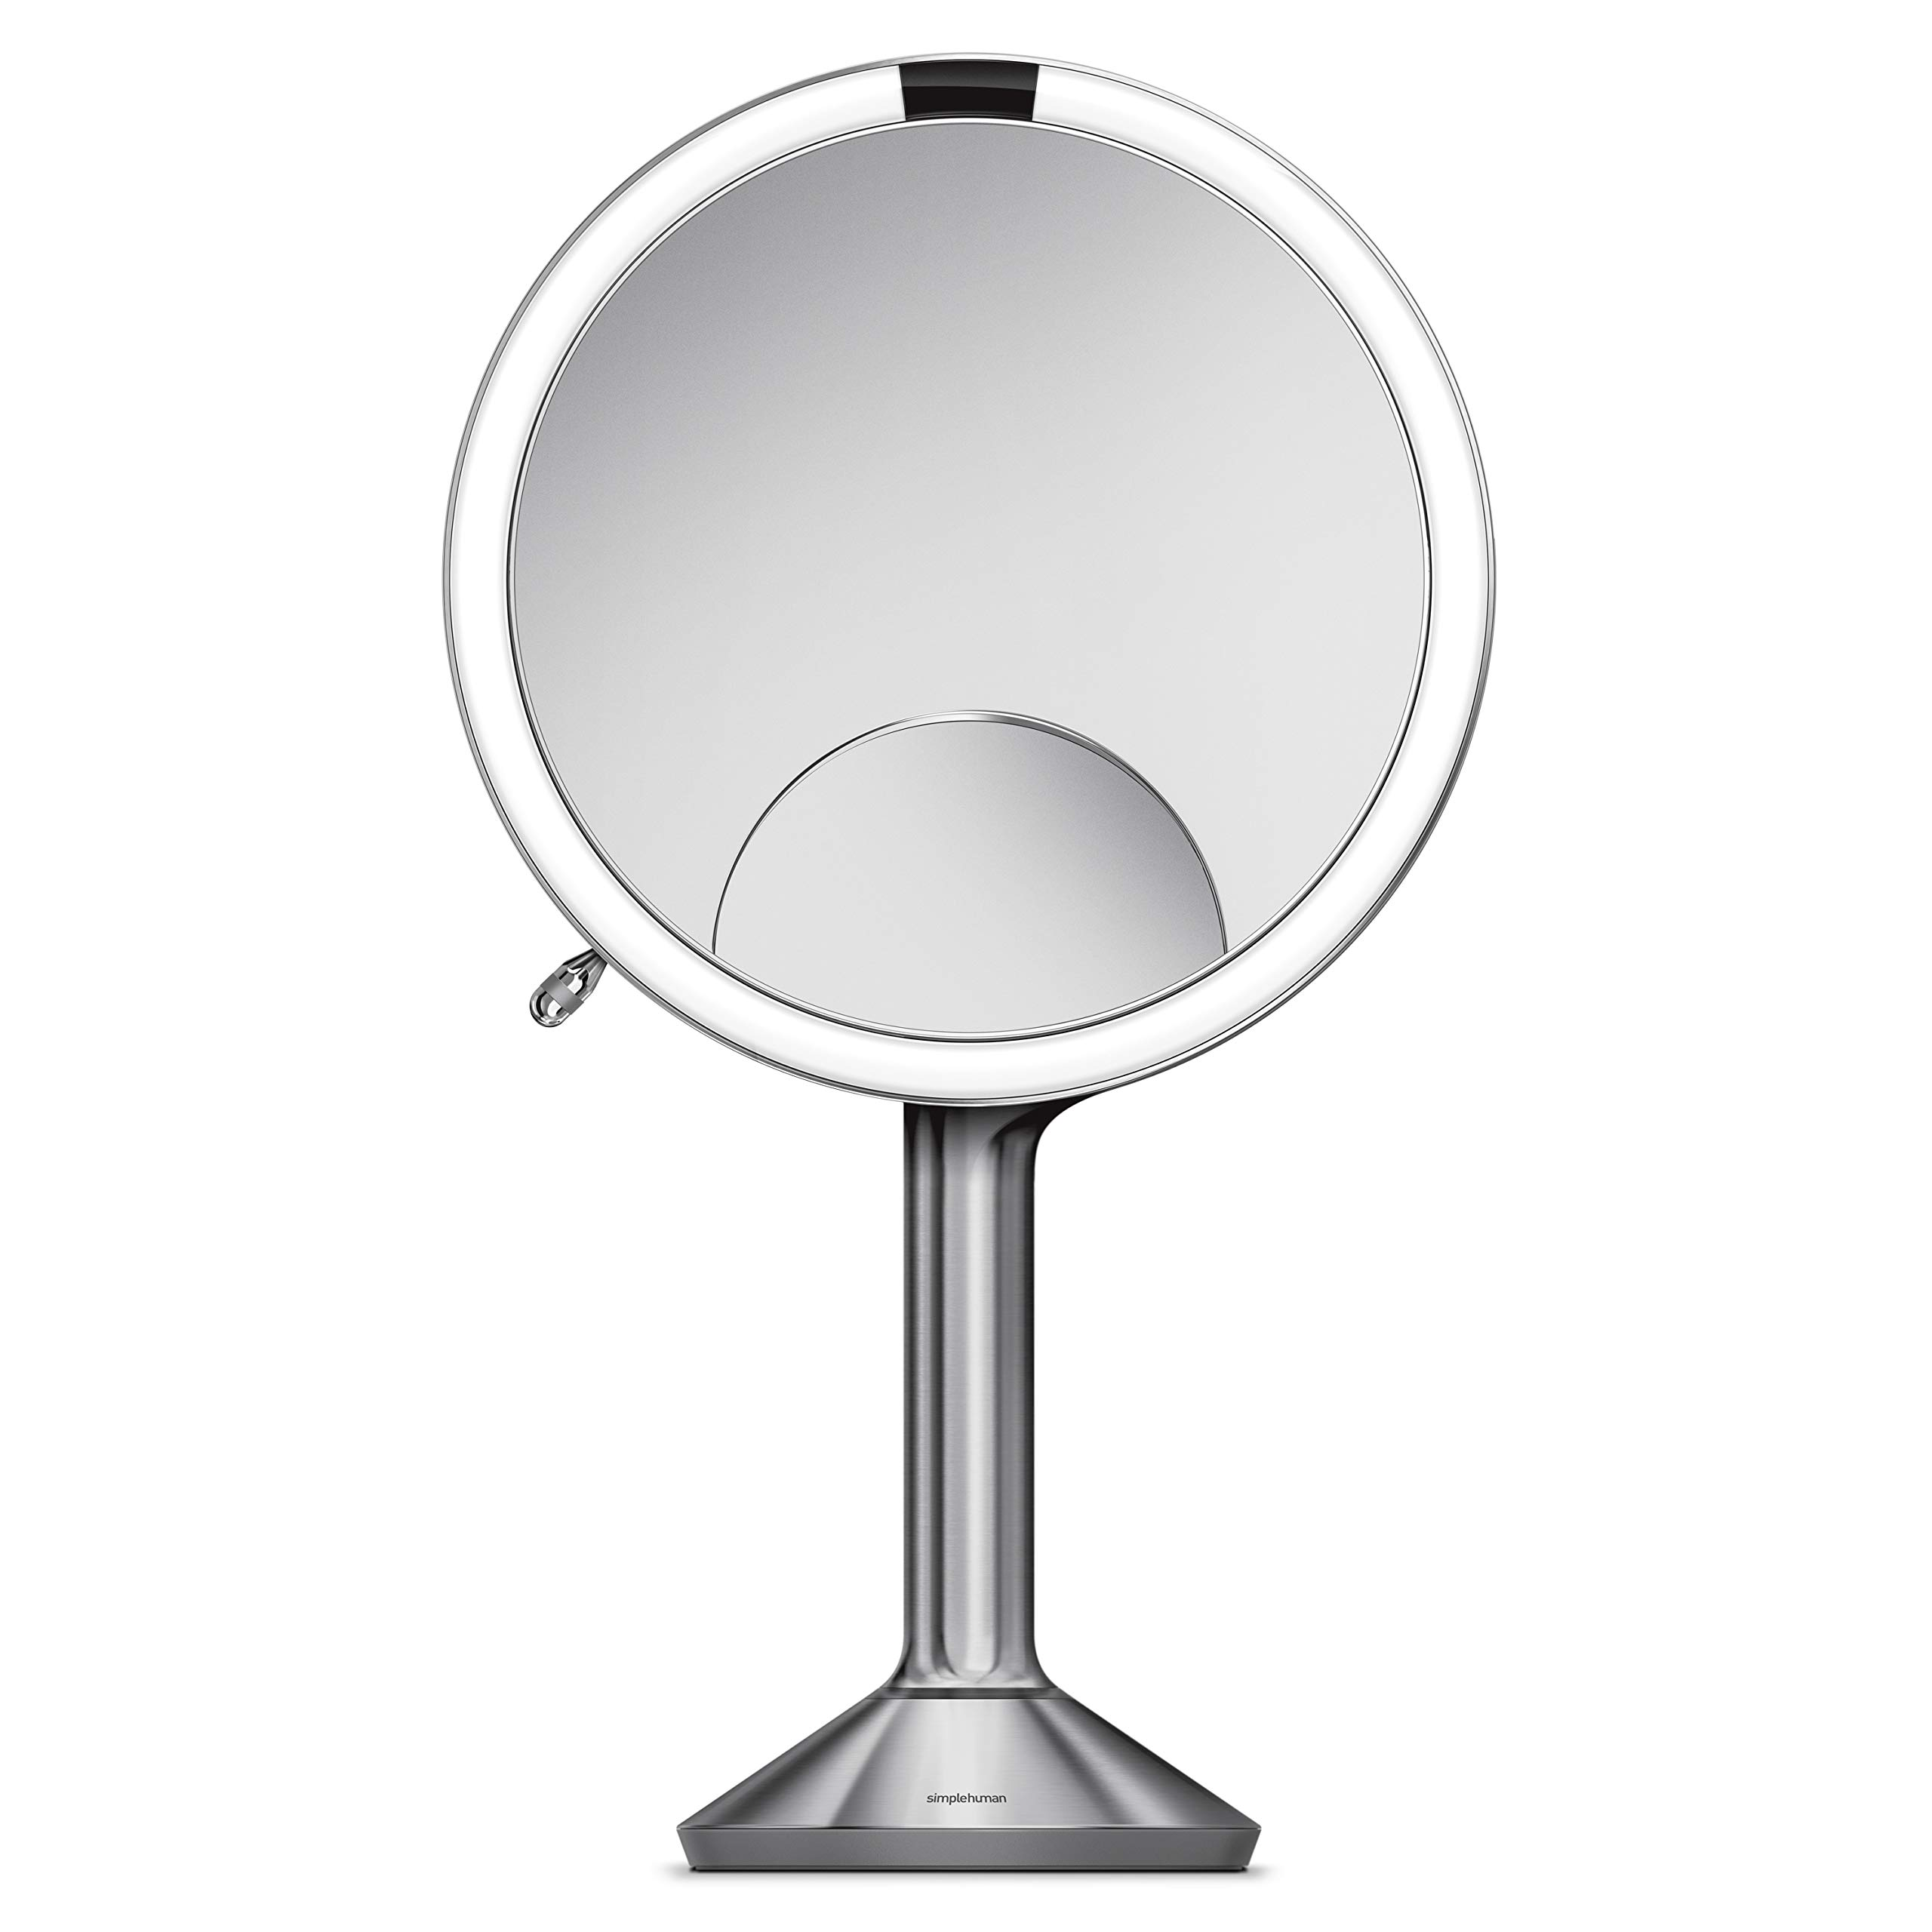 simplehuman Sensor Mirror Trio, 8'' Round with Touch-Control Brightness, 5X, 1x, 10x Magnification, Brushed Stainless Steel